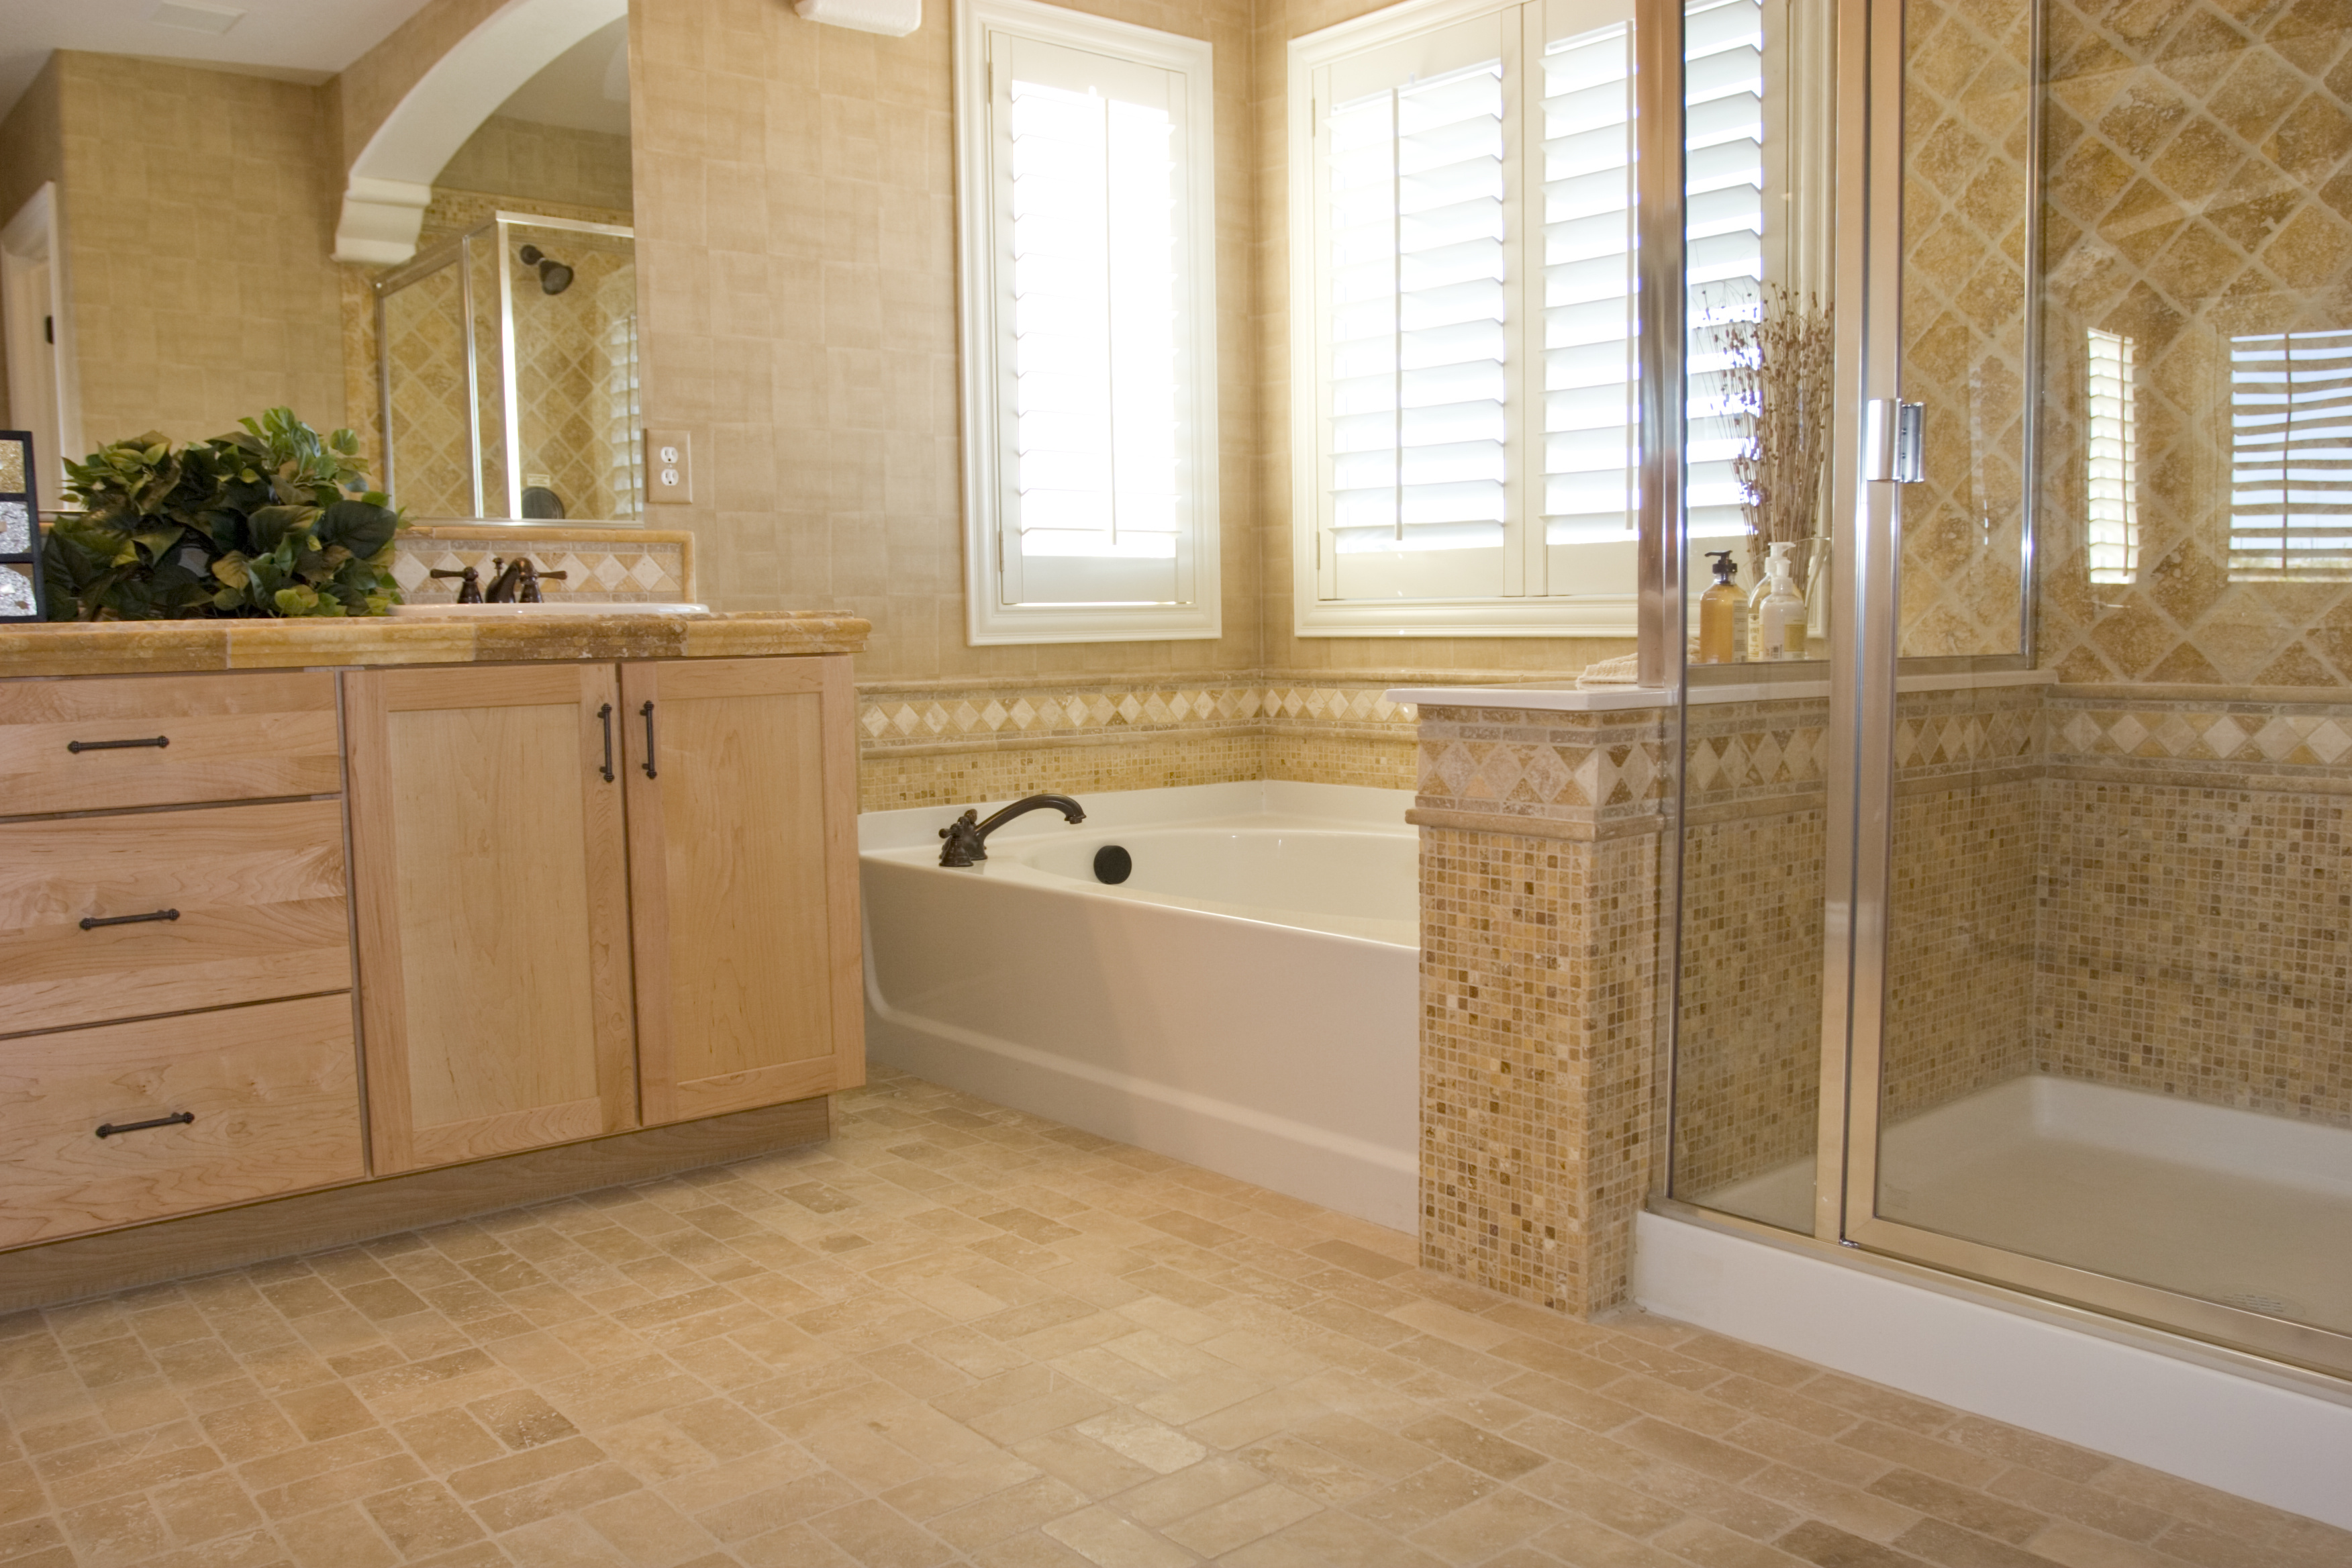 St Louis Bathroom Remodeling Upscale Bathroom Remodel  St Louis Bathroom Remodeling Experts